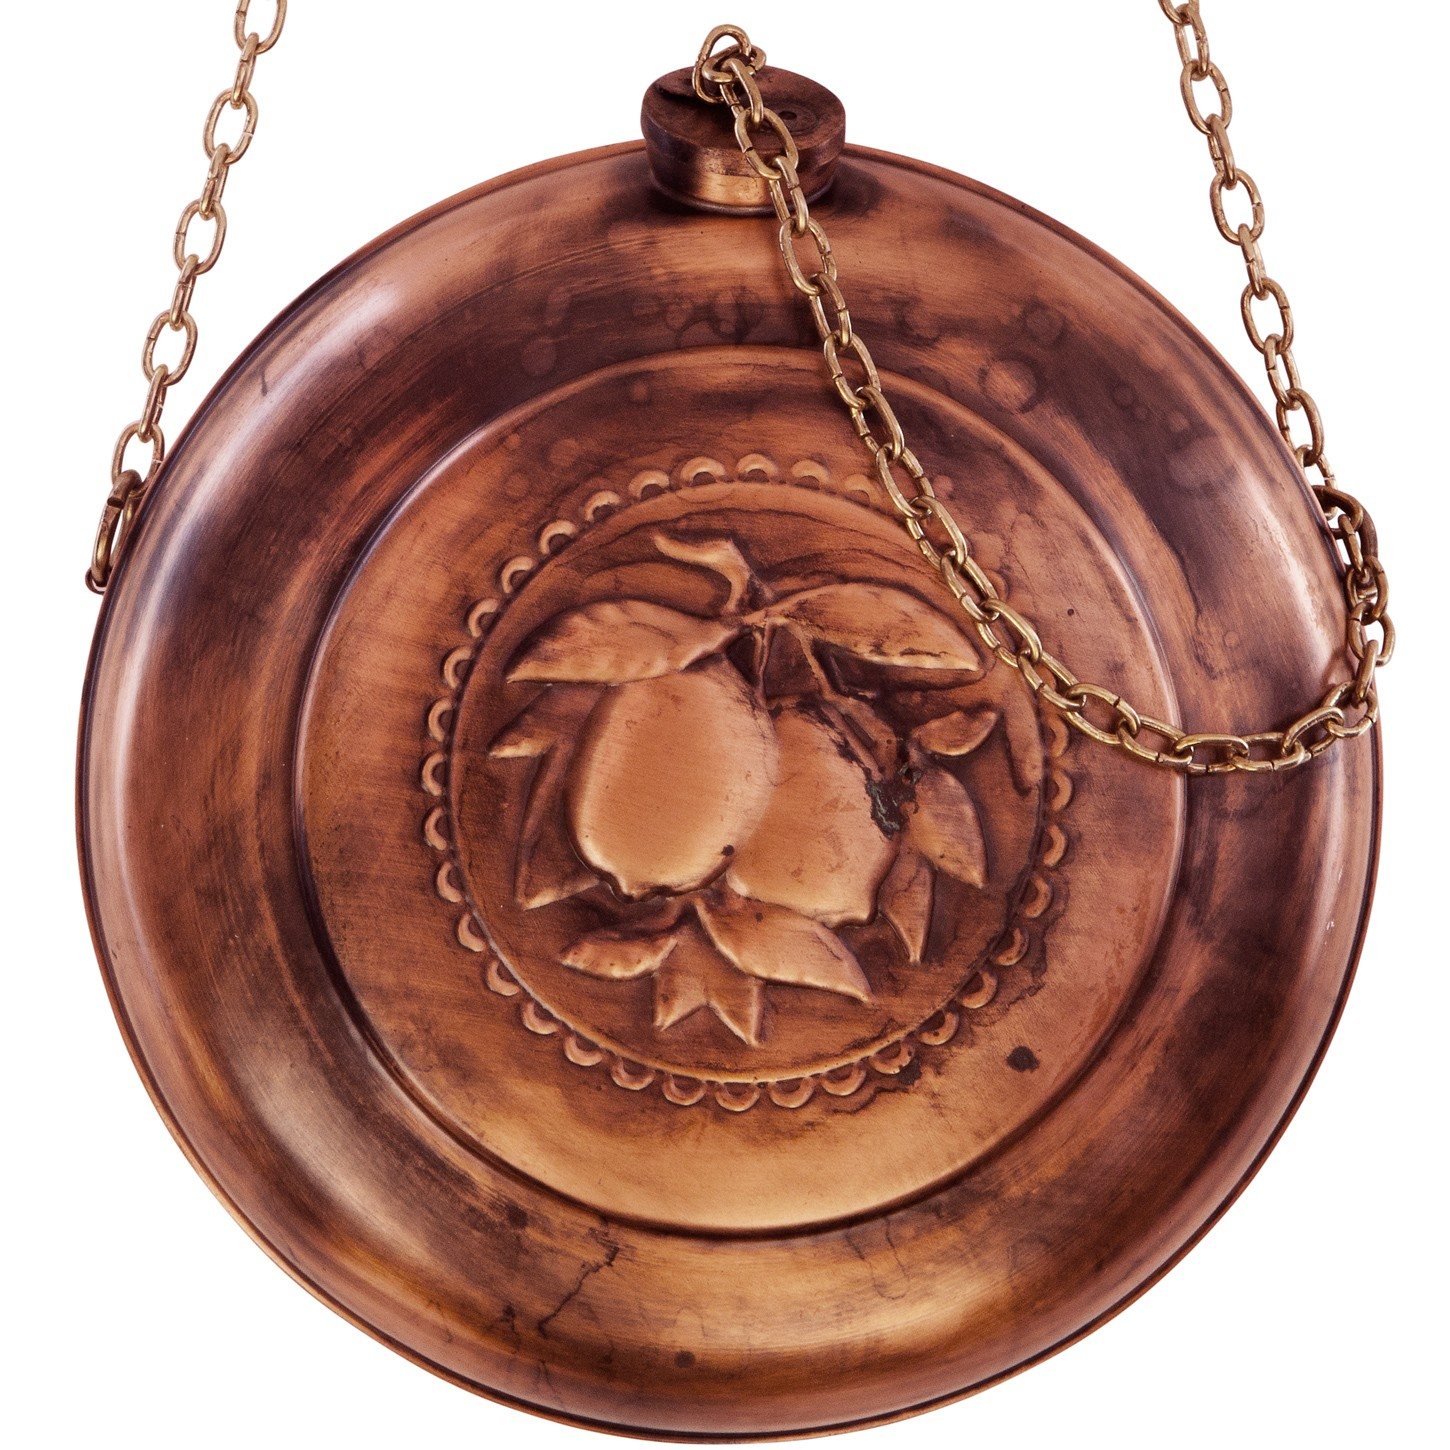 Decorative_Hanging_Flask_Copper_Rustic-1